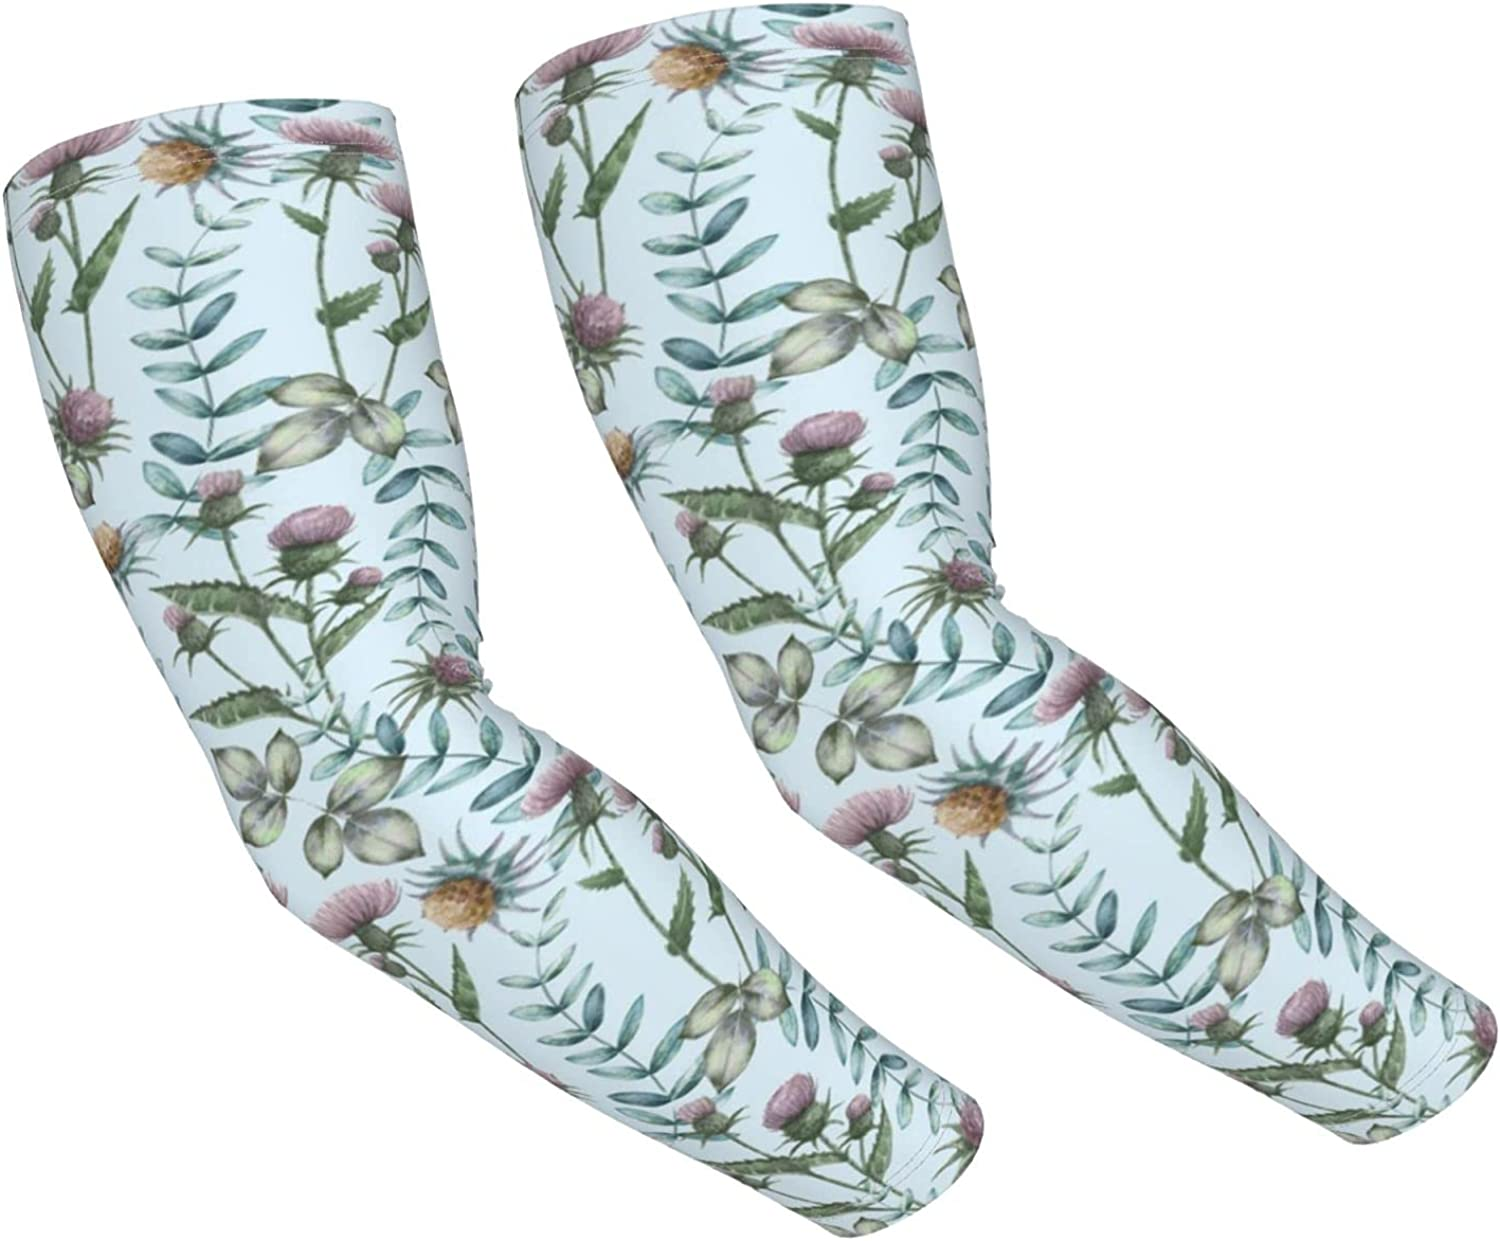 Purple Shipping included Max 89% OFF peony Unisex Arm Sleeves Coolin Covers Protection Sun